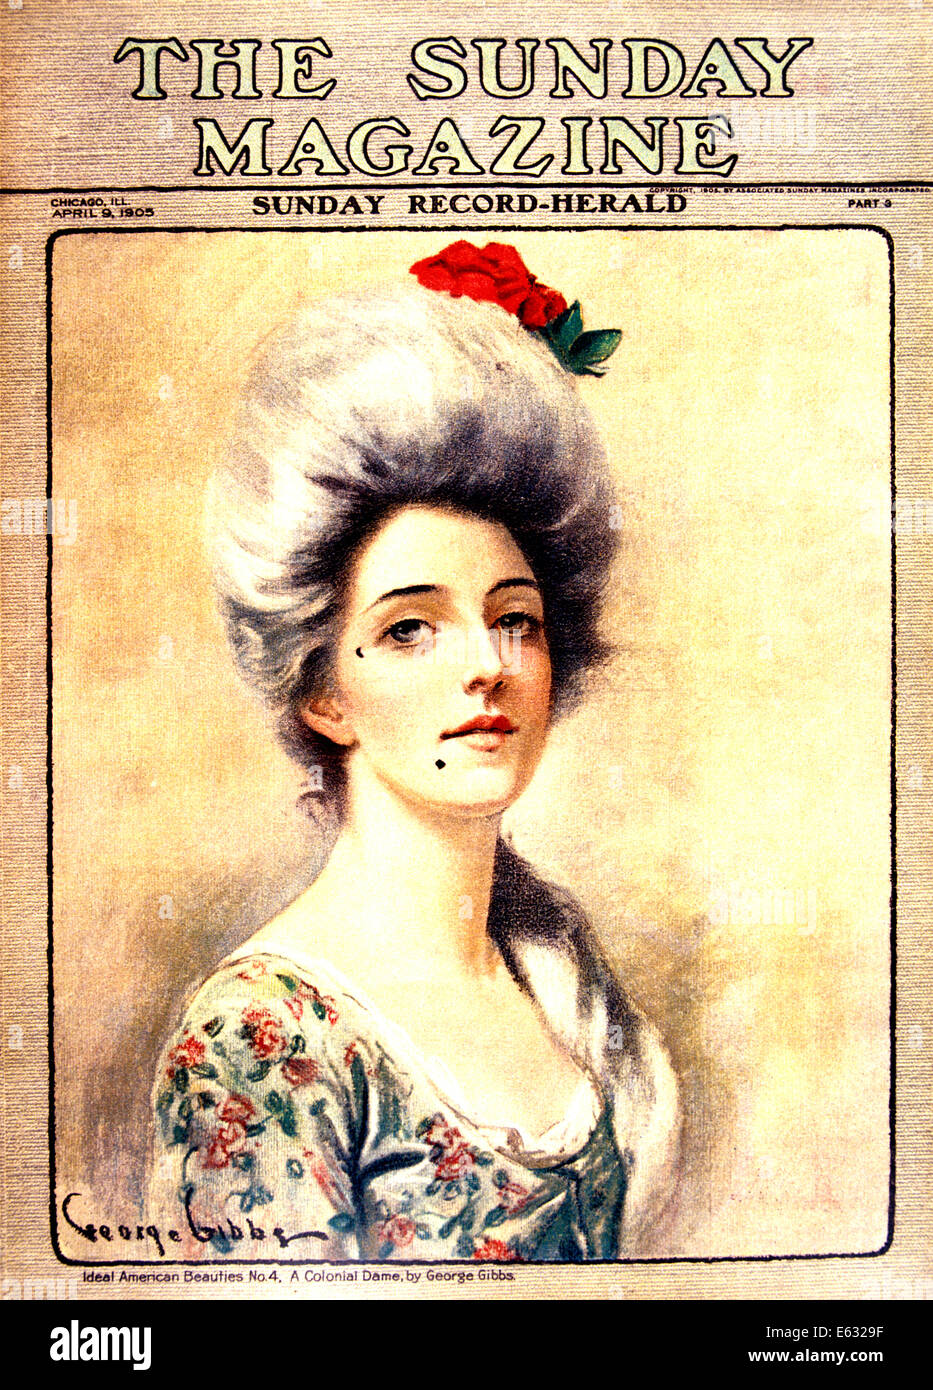 magazine cover portrait of s th century w powdered 1905 magazine cover portrait of 1700s 18th century w powdered hair beauty mark colonial fashion by g gibbs